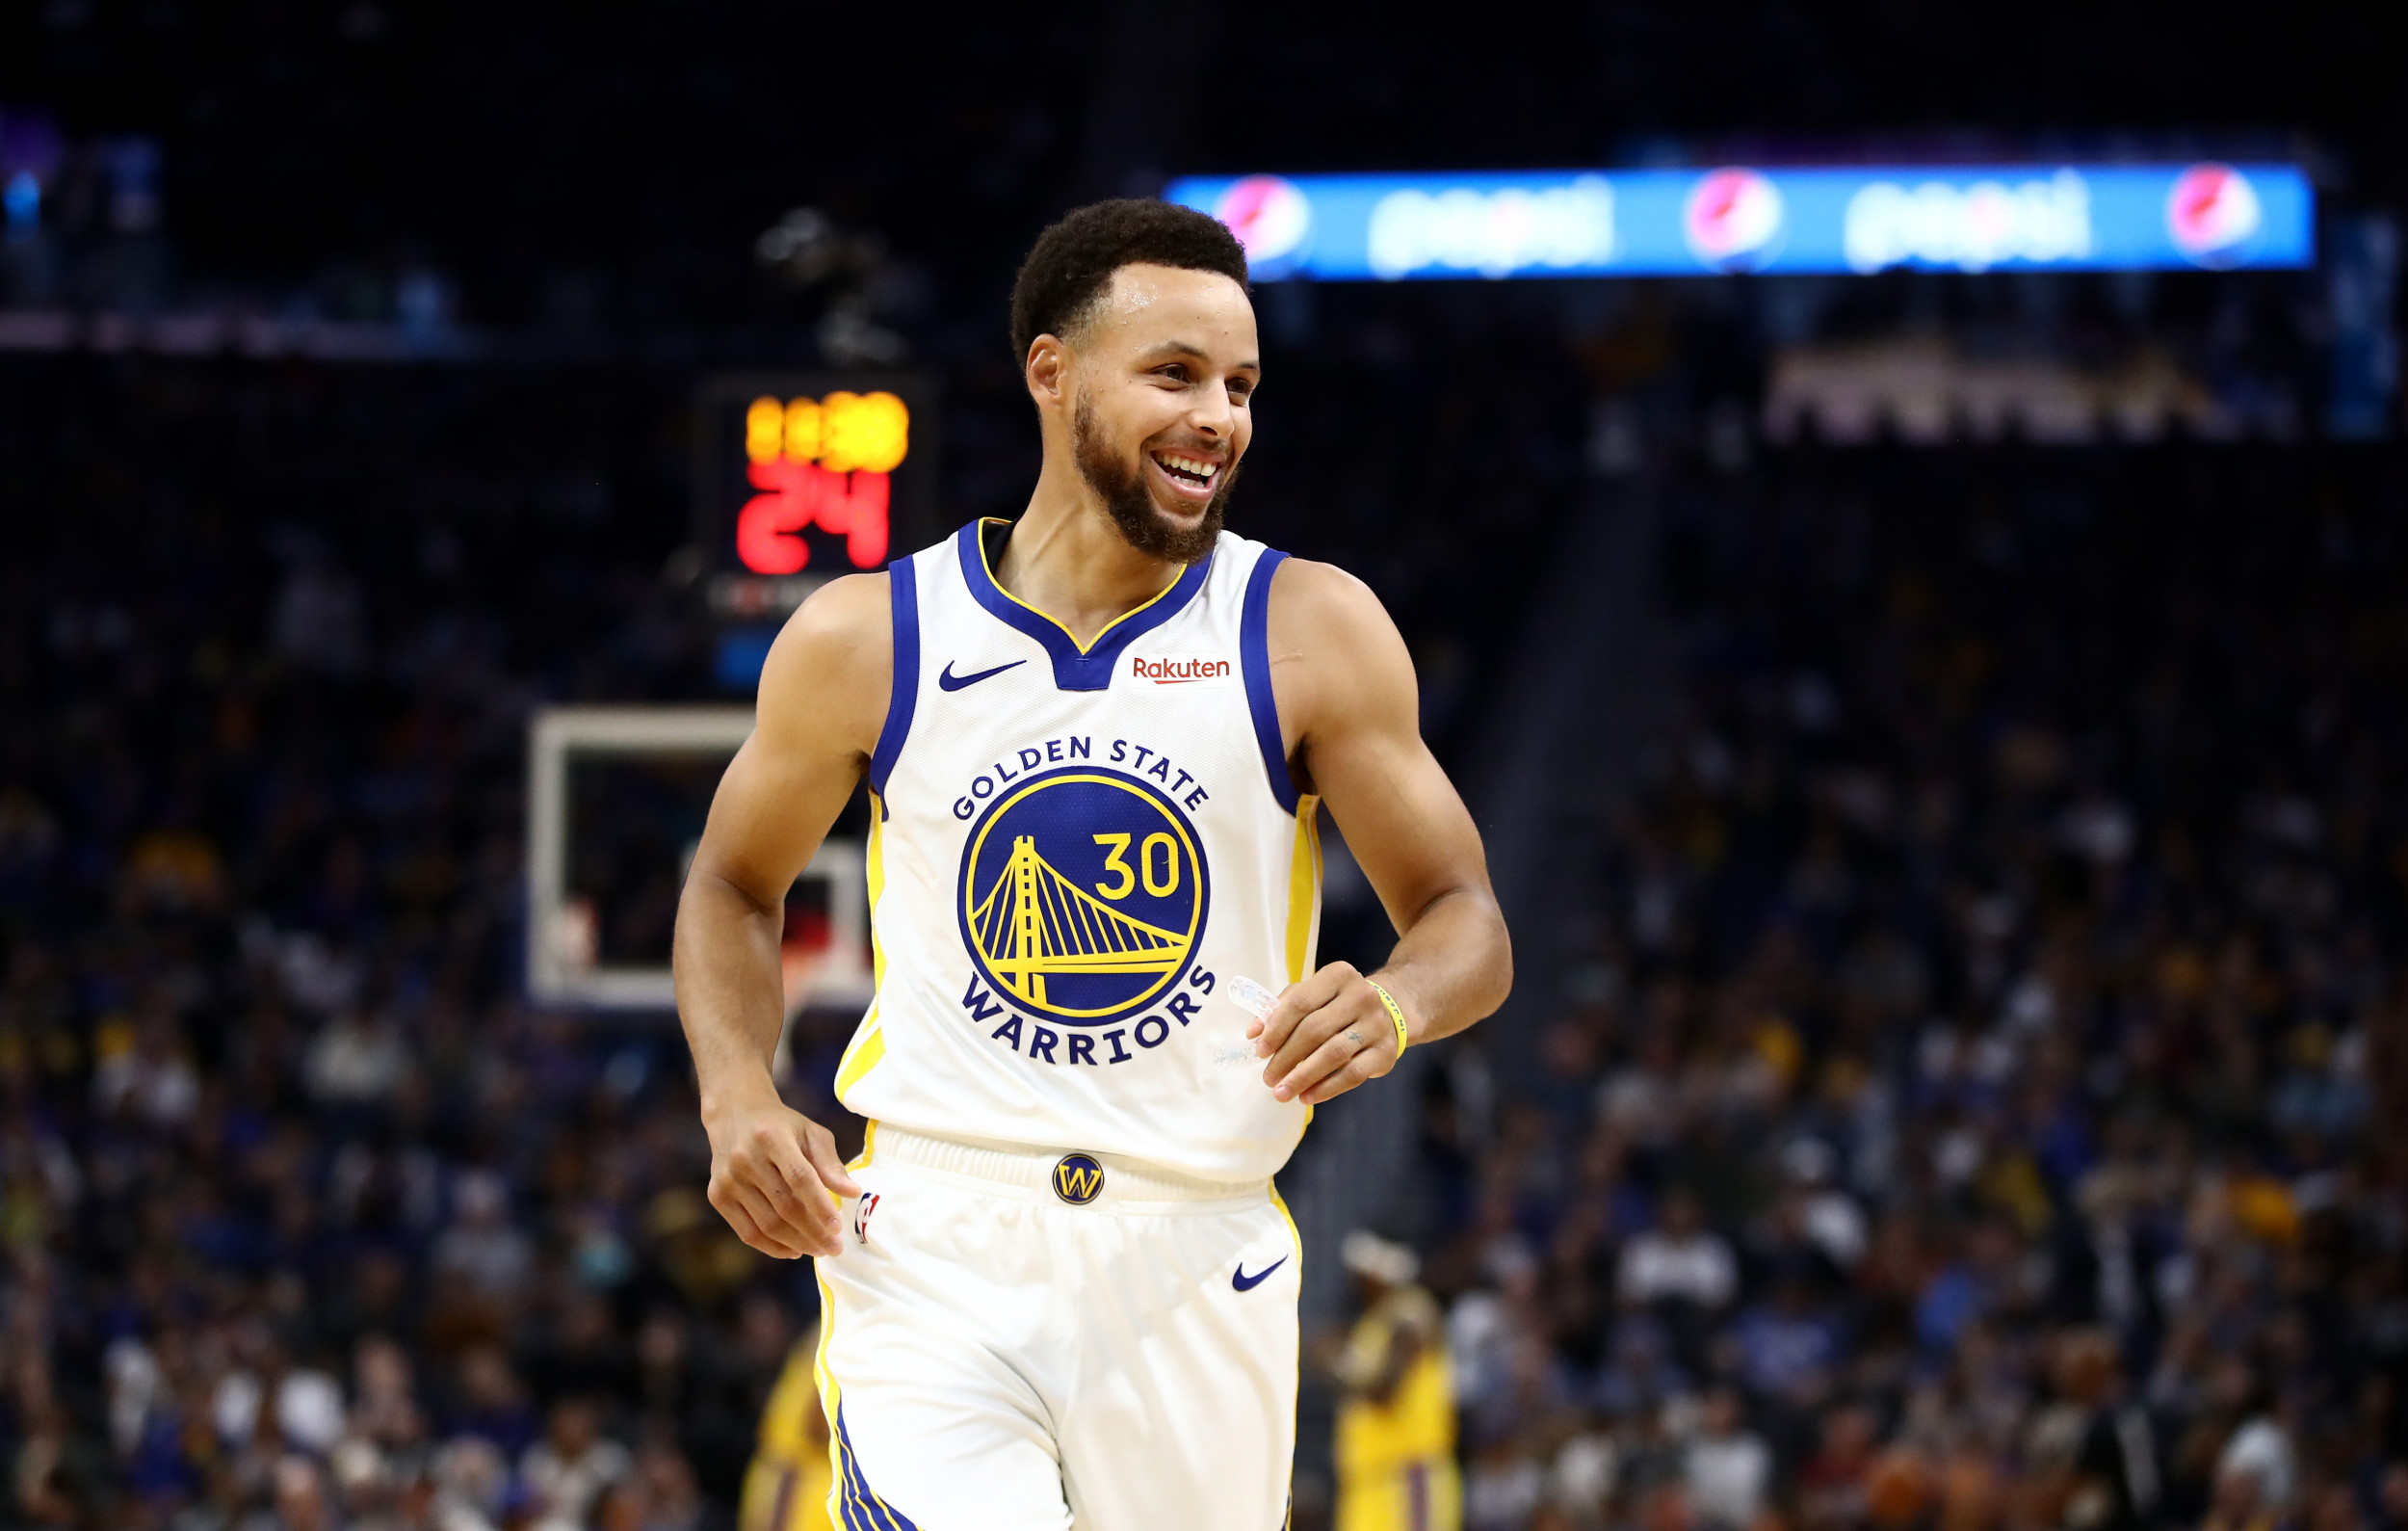 Nba Schedule 2019 Clippers Vs Warriors Tv Channel Live